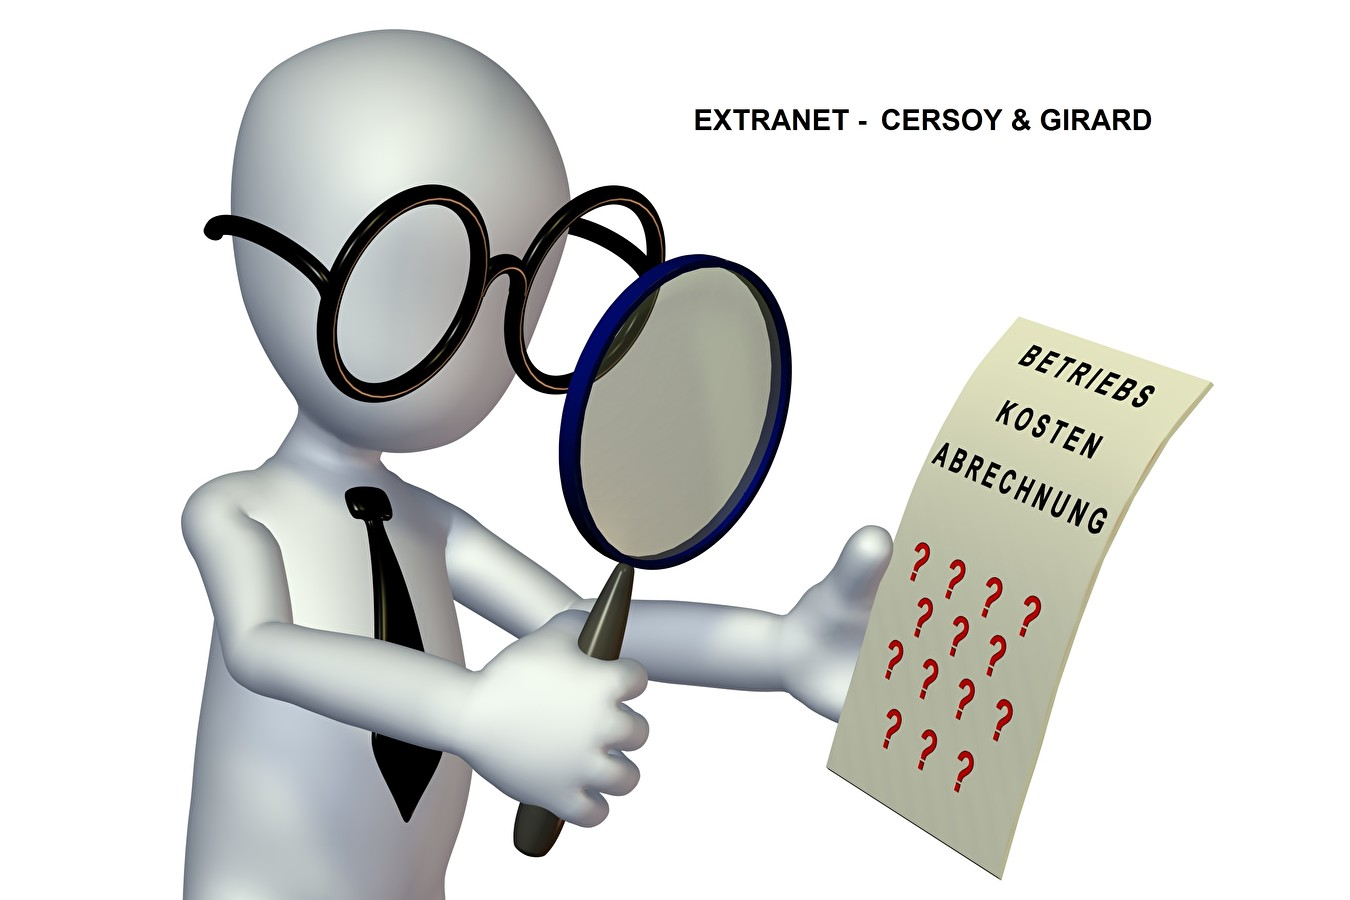 extranet CERSOY & GIRARD